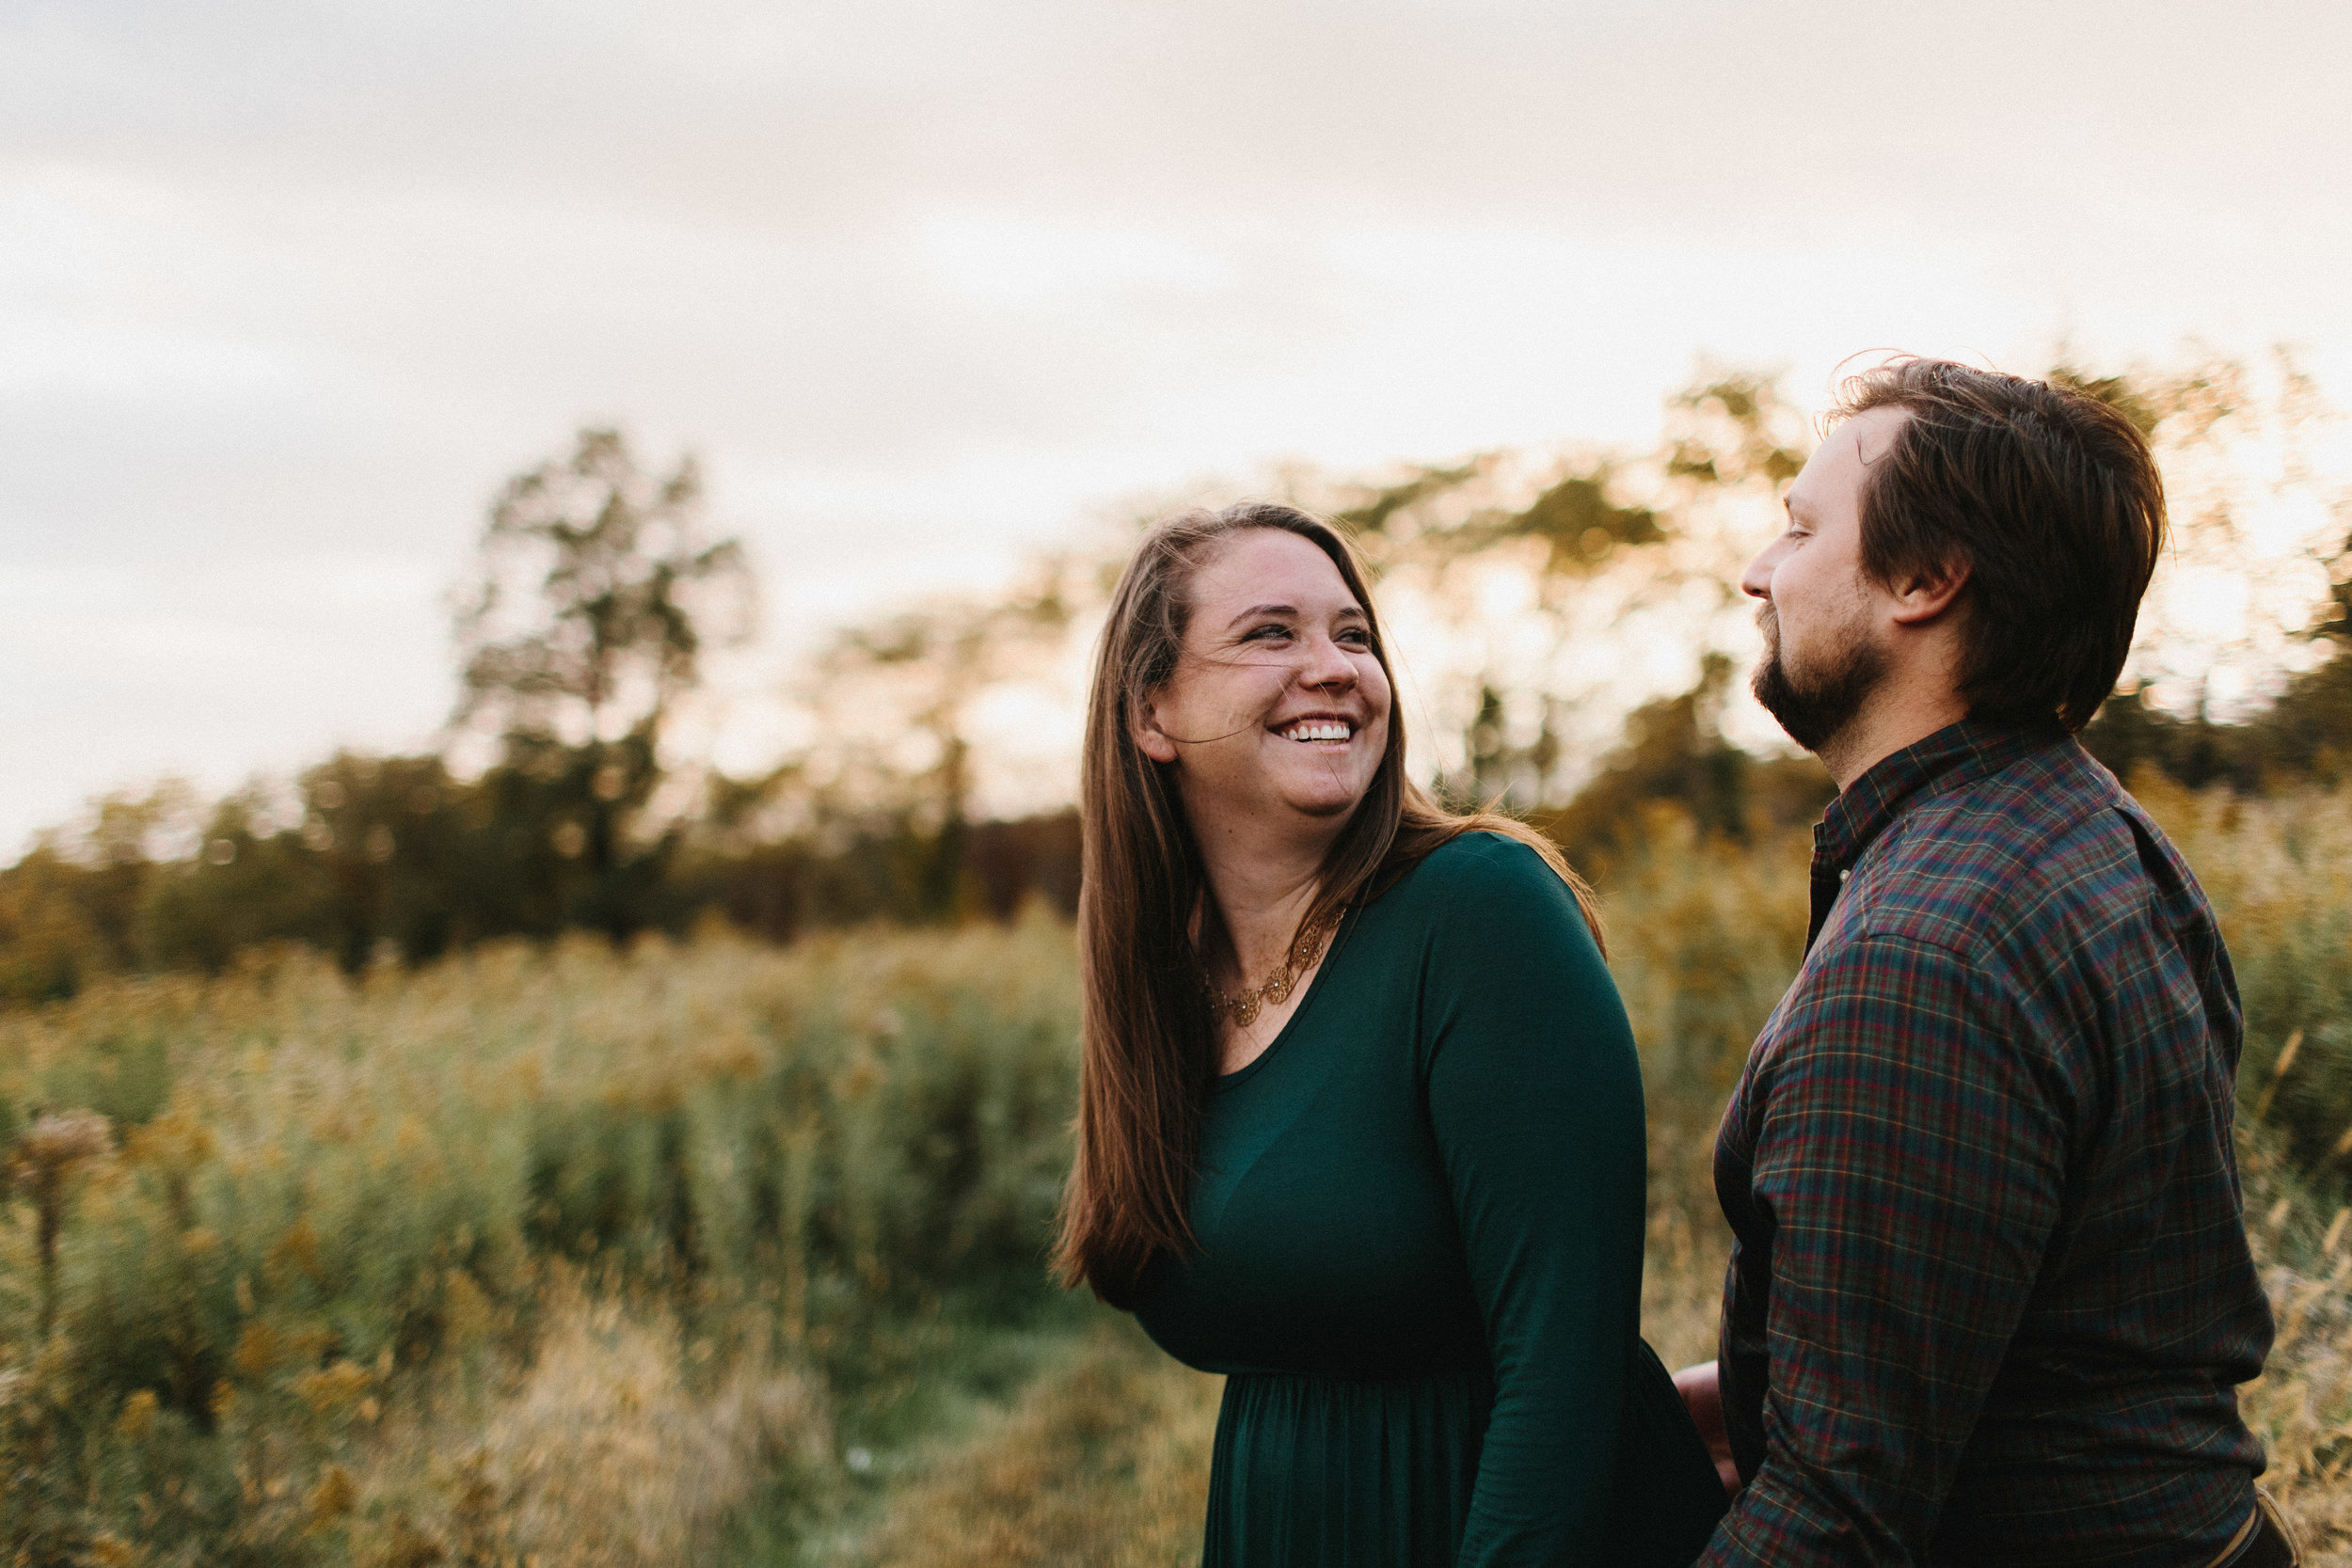 iowa_city_engagement_adventure_prairie_graduate_at_home_dog_couples_downtown_wilsons_orchard_1217.jpg